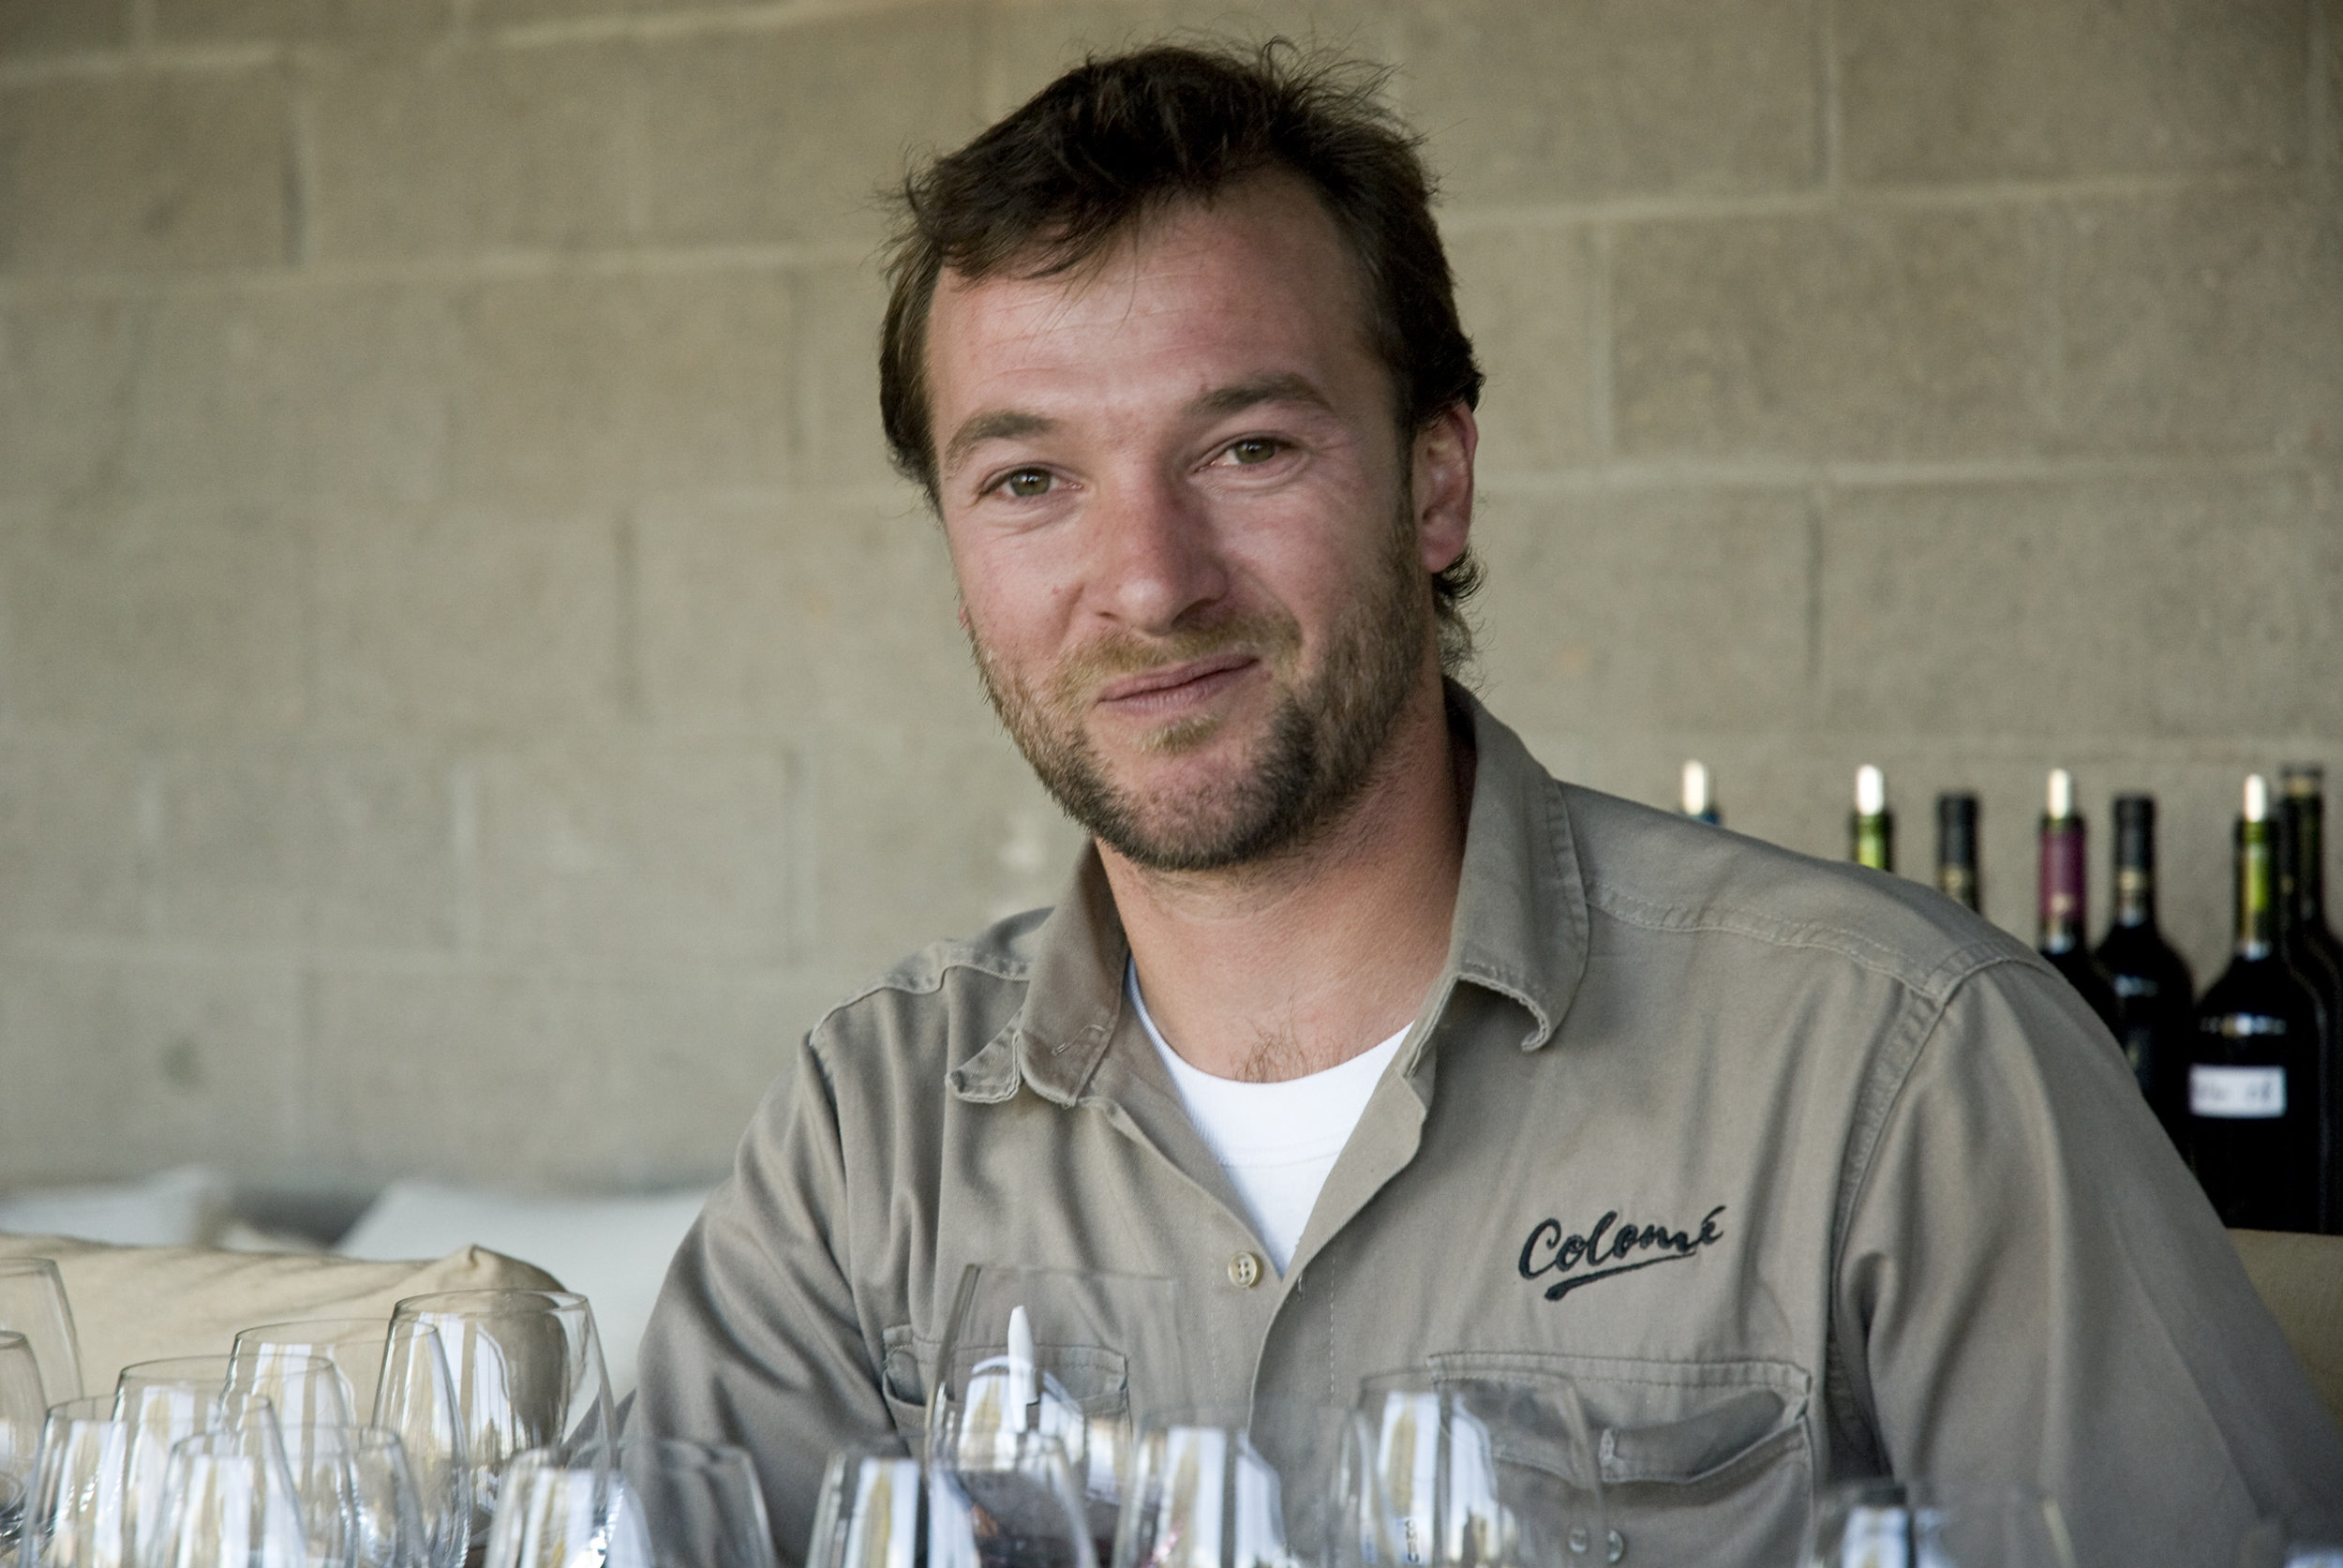 Thibaut Delmotte is the talented winemaker behind all Bodega Colome wines.